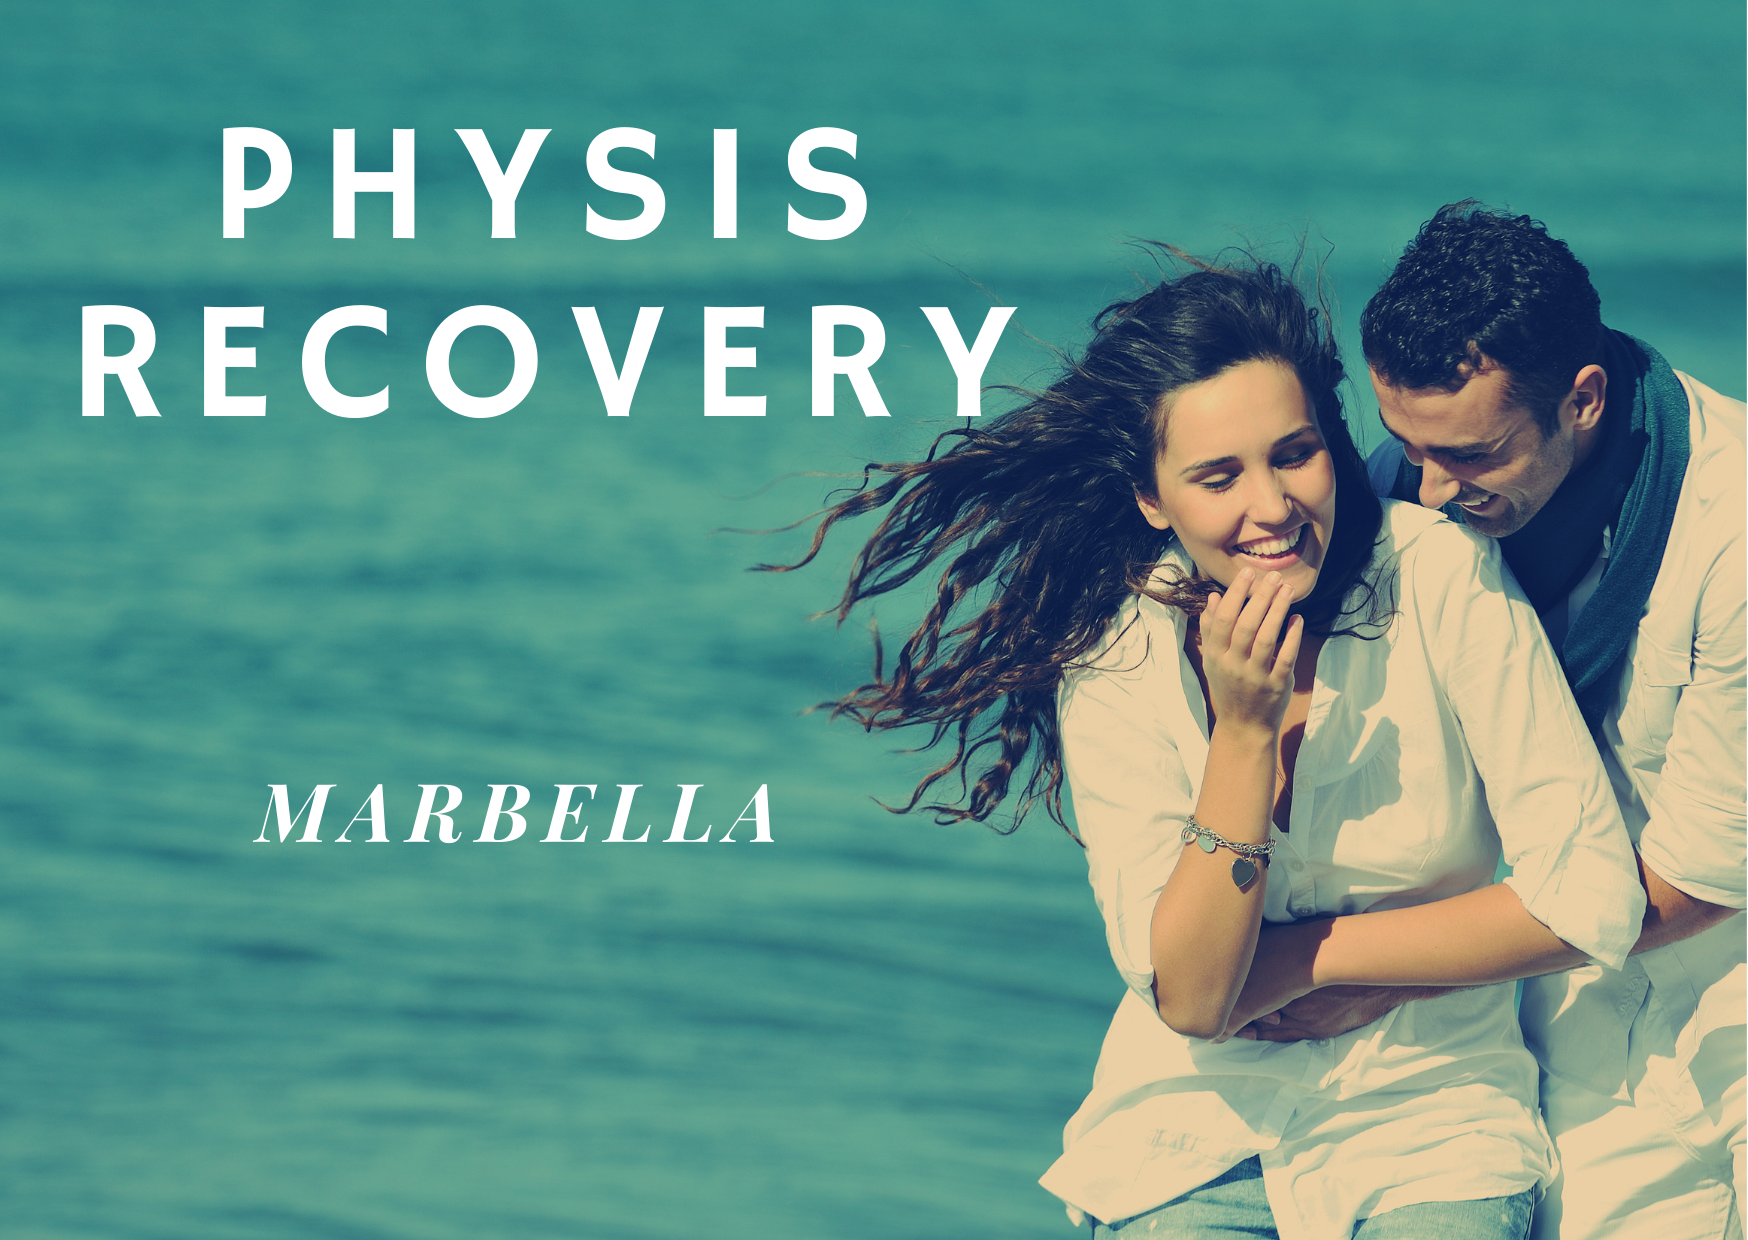 Physis Recovery Treatment